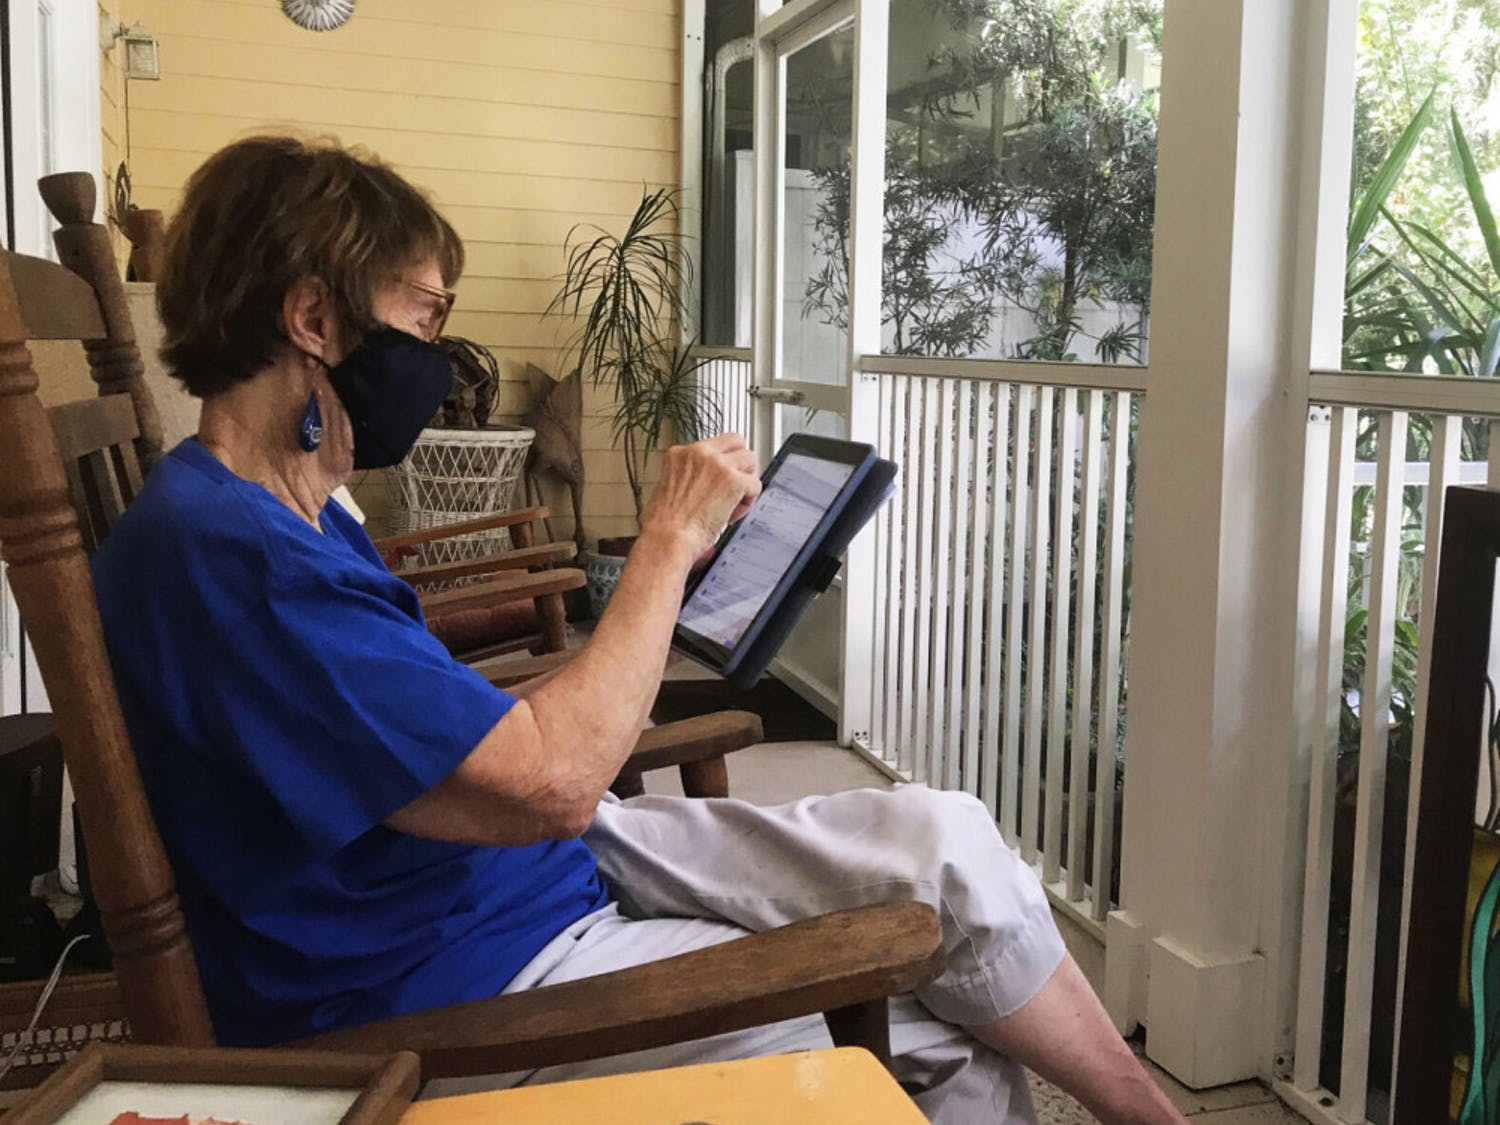 Patsy Nelms, an 83-year-old resident of Oak Hammock, is seen using her iPad on her back porch Sunday, Oct. 11, 2020. Patsy occasionally invites friends to sit on her porch and share her homemade, frosty peppermint ice cream — a Patsy Nelms staple, which she offers within minutes of entering her home.